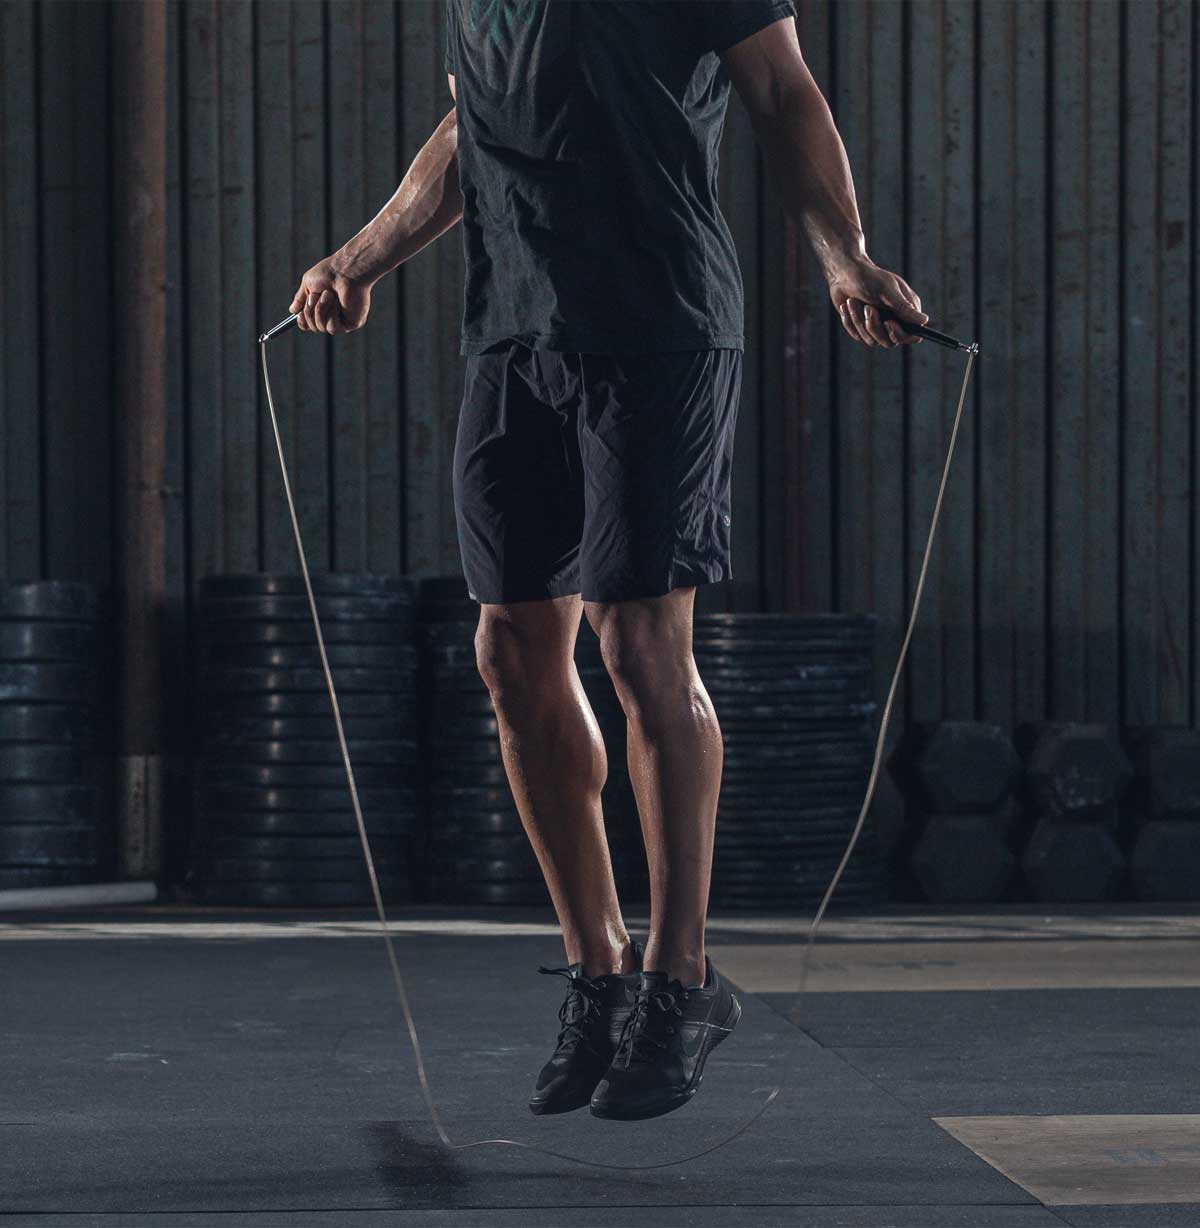 https://www.onnit.com/onnit-performance-jump-rope/